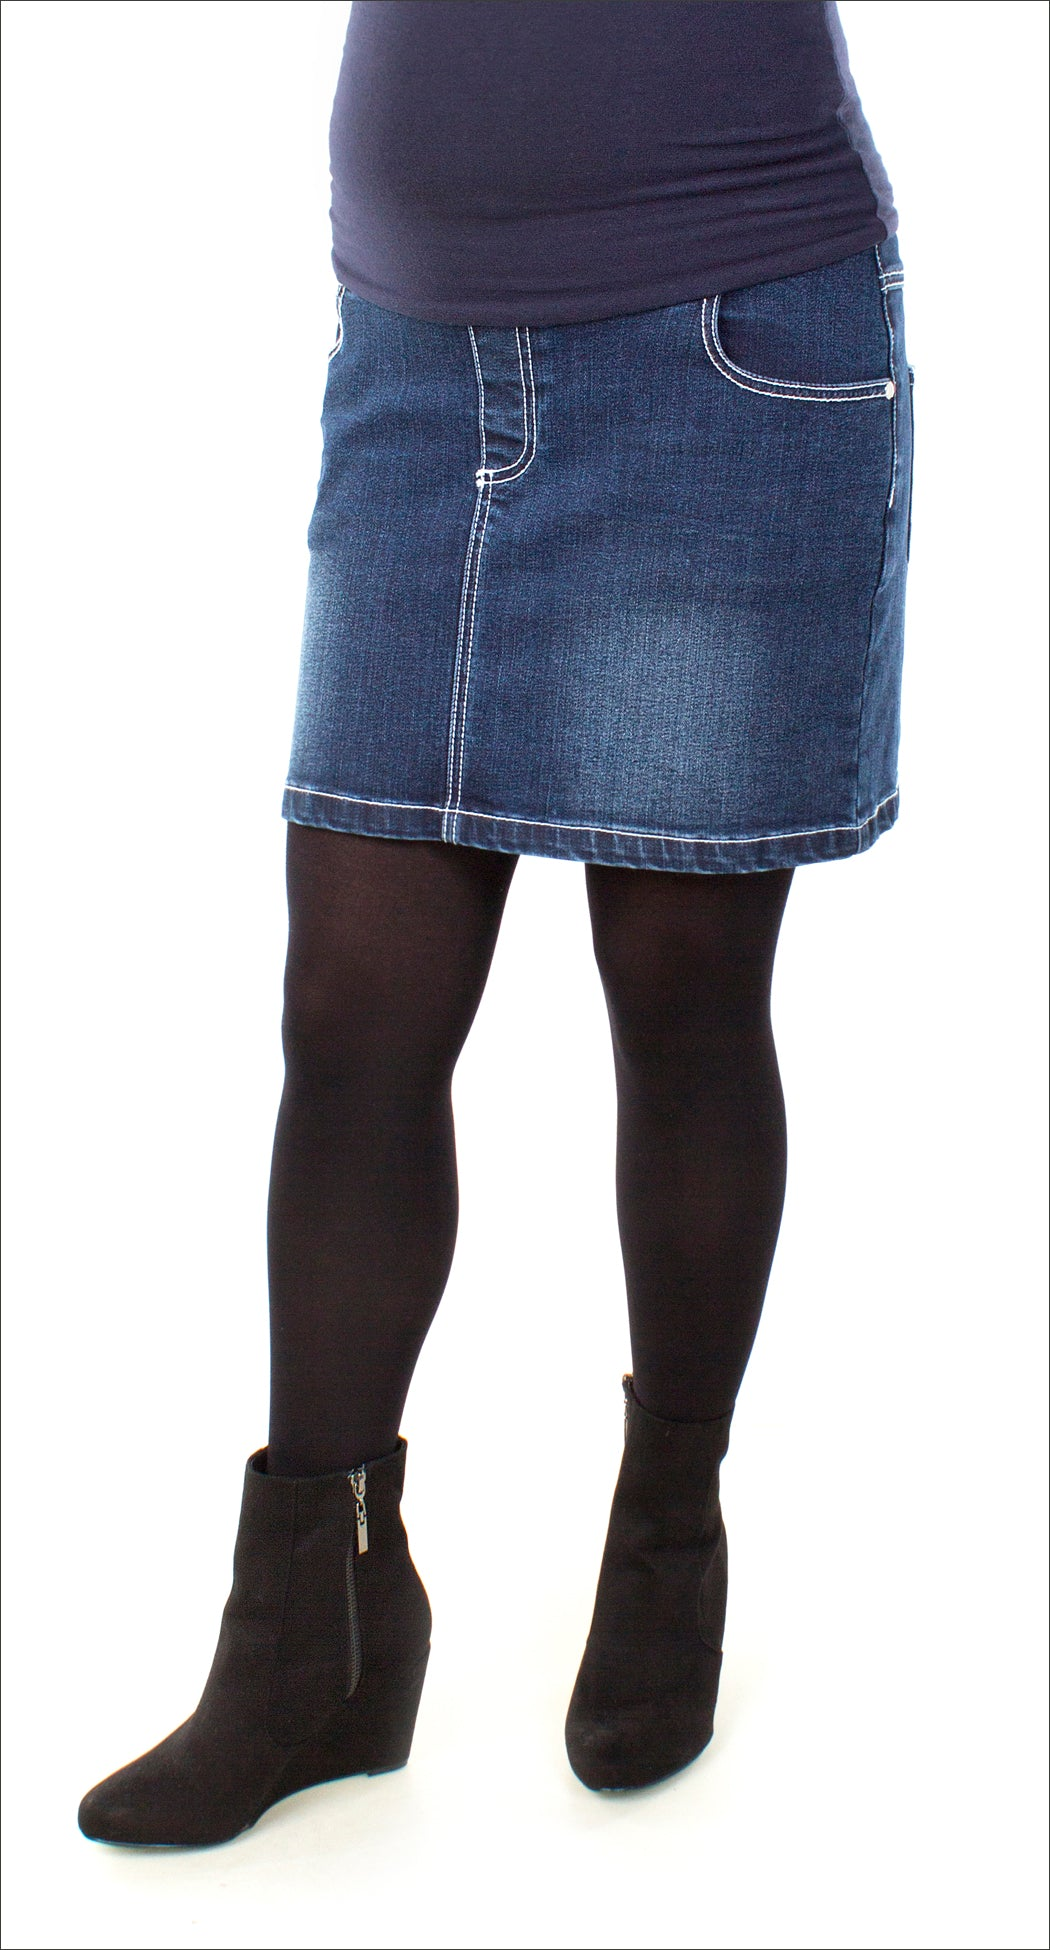 b5d1896e6af9a Dark Wash Jean Skirt – Nest and Sprout Maternity